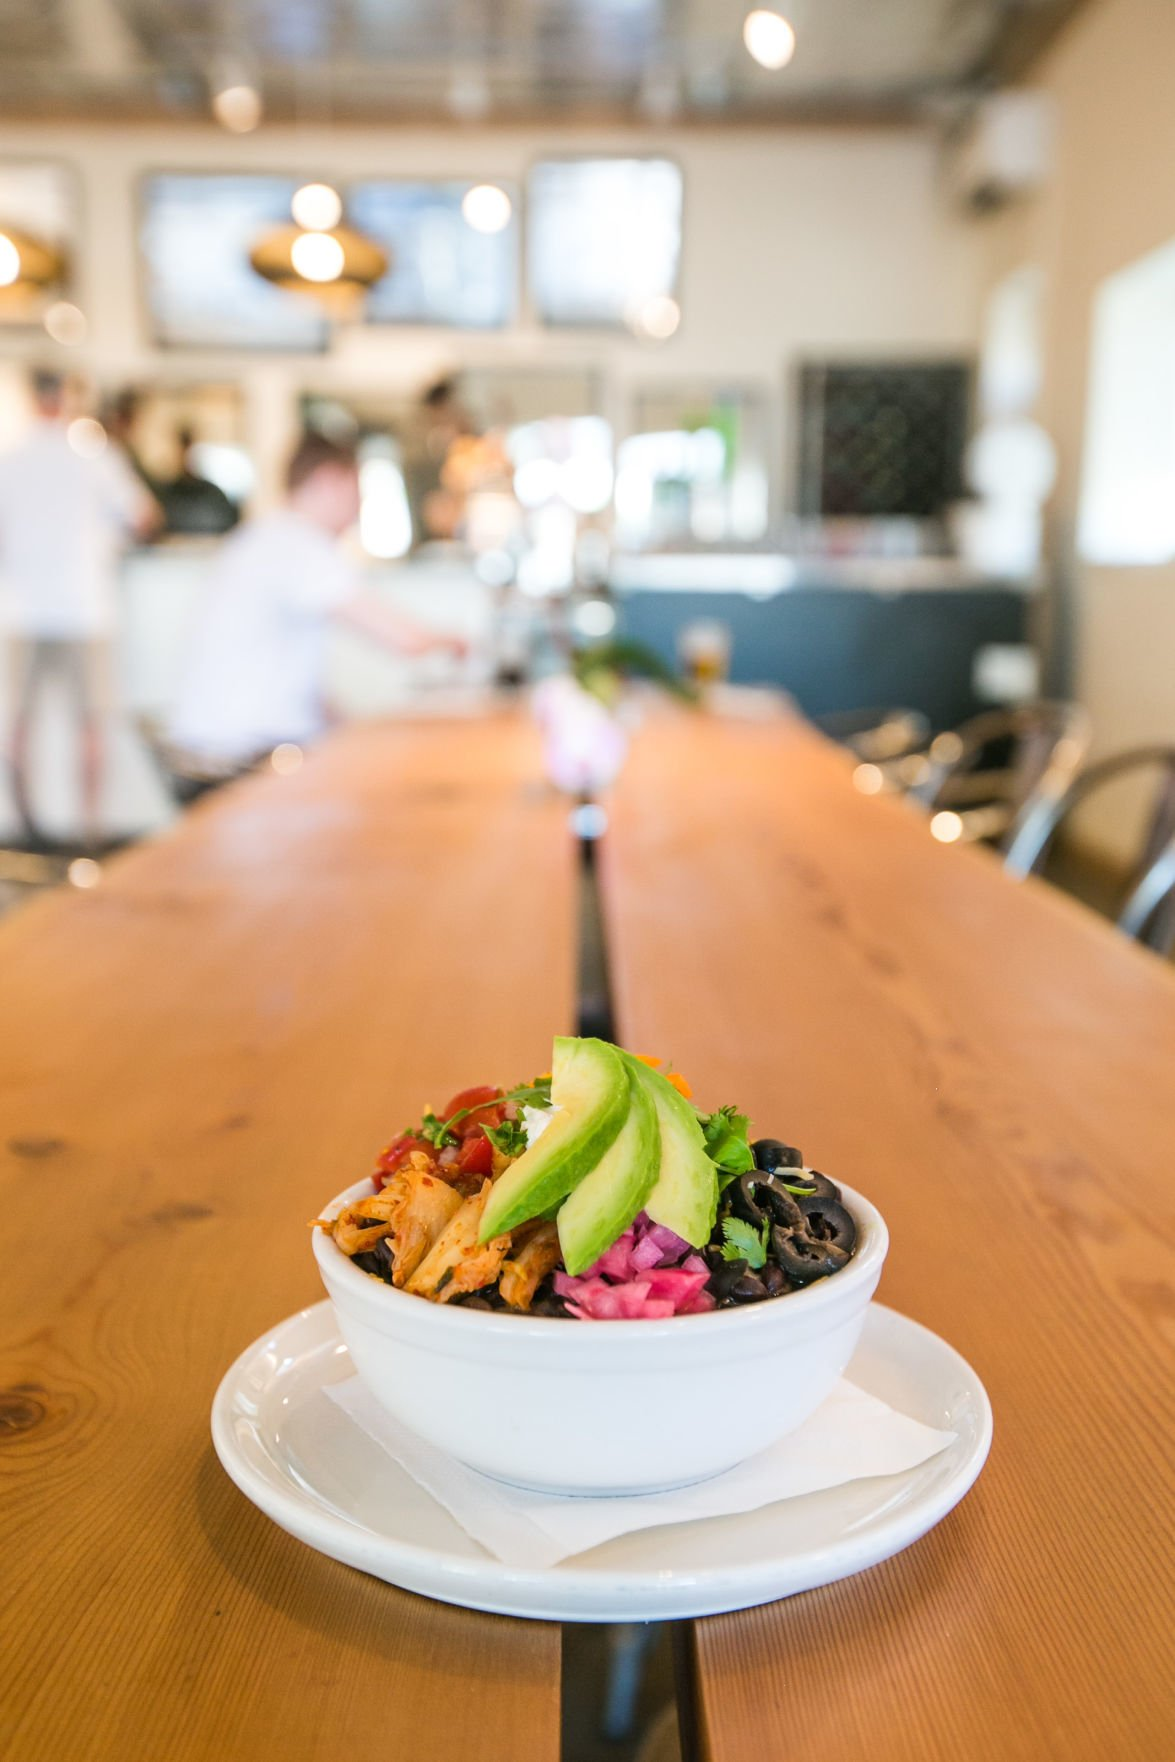 Culinary offerings expand in small towns throughout Central